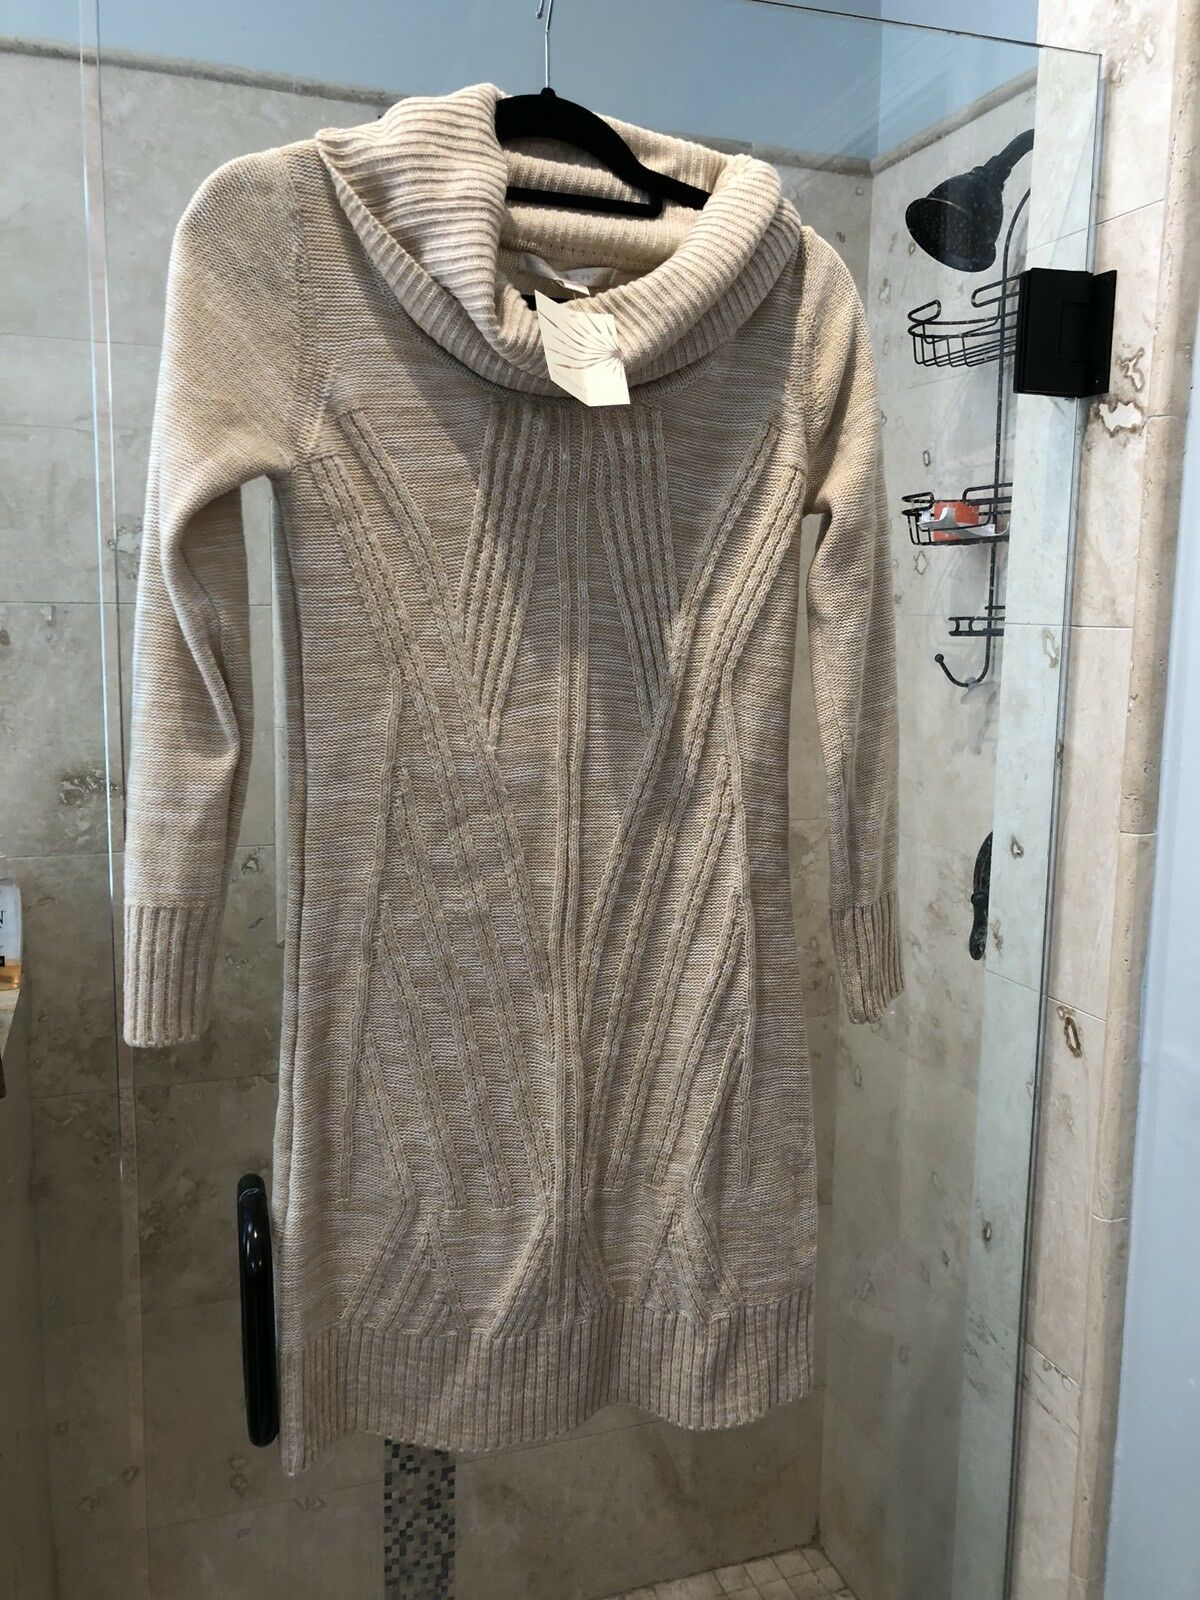 NEW Boston Proper XS 2 4 Cowl Oatmeal Tan Cable Knit Sweater Dress   98 Nwt